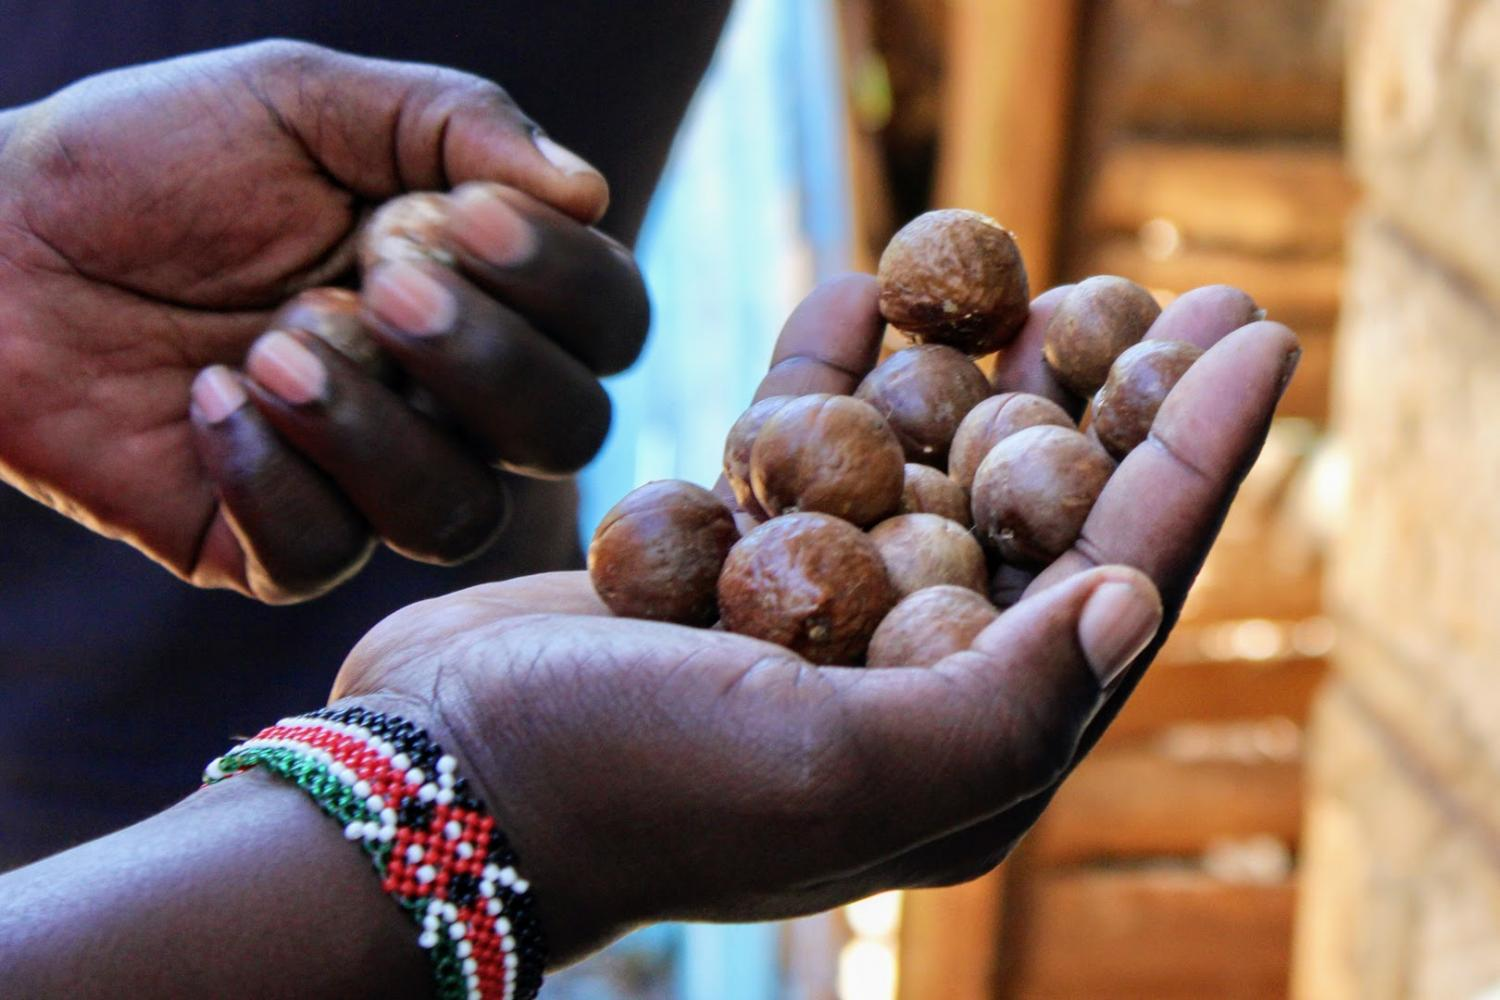 Let's visit Kenya, where macadamia nuts are grown for you with care and in harmony with nature and its inhabitants.